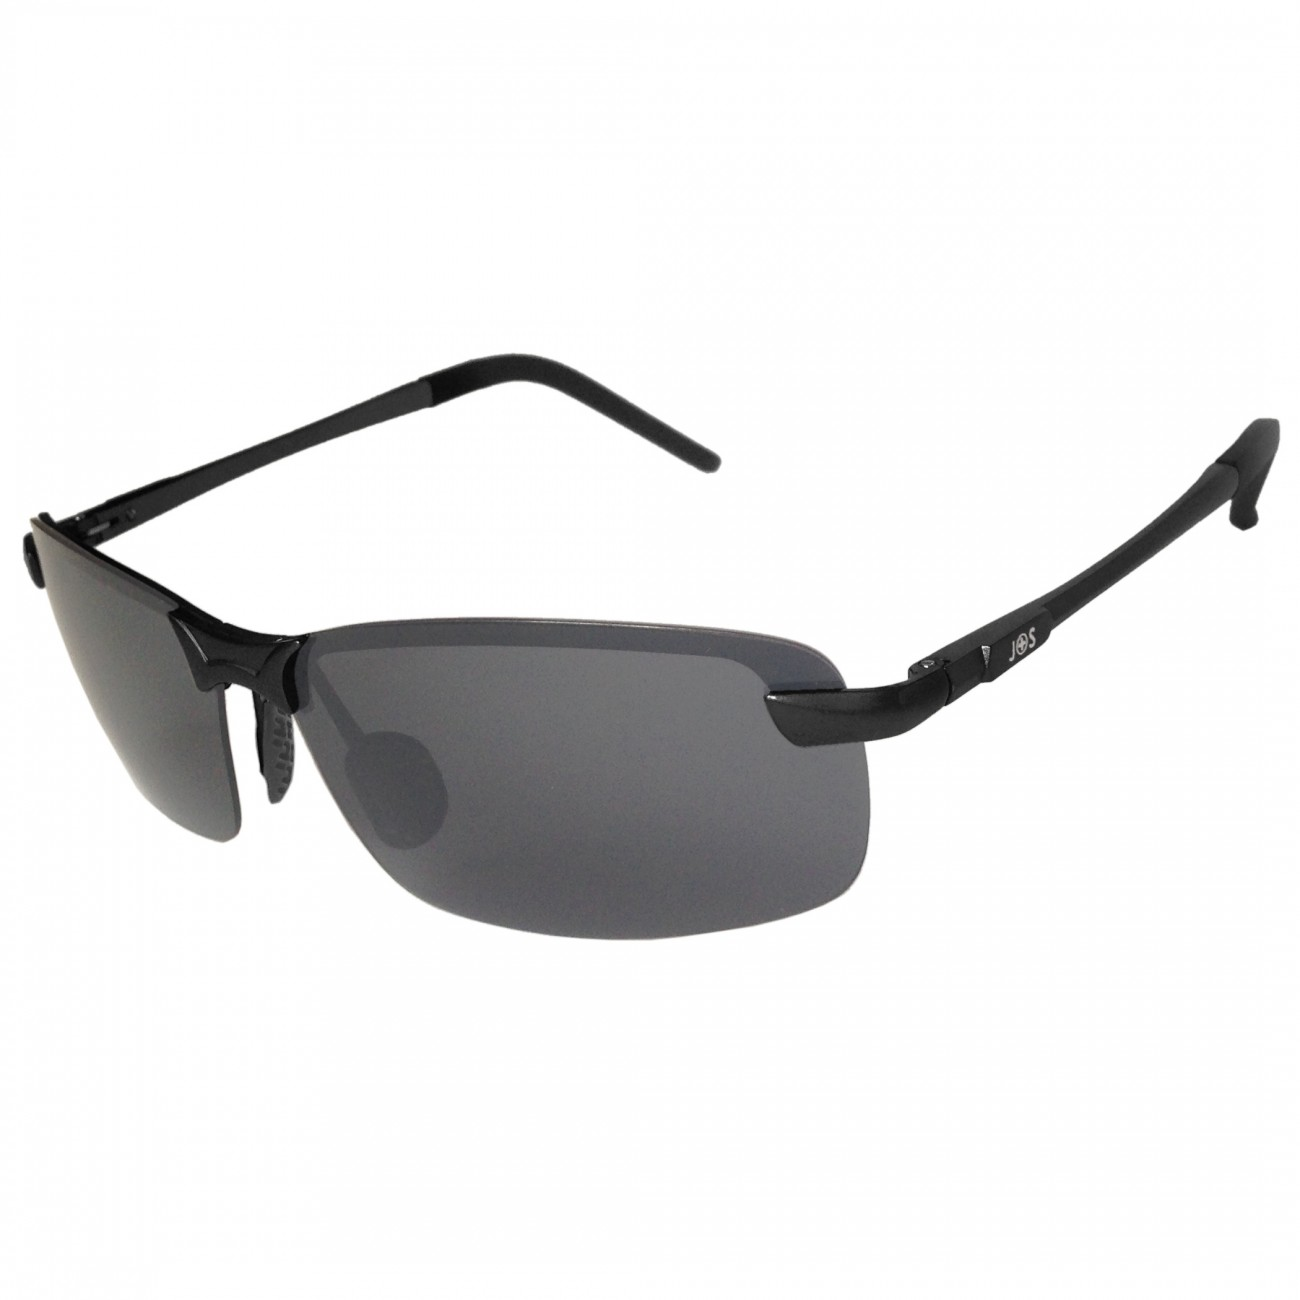 Mens Sunglasses Polarized  j s ultra lightweight men s rimless sports sunglasses polarized